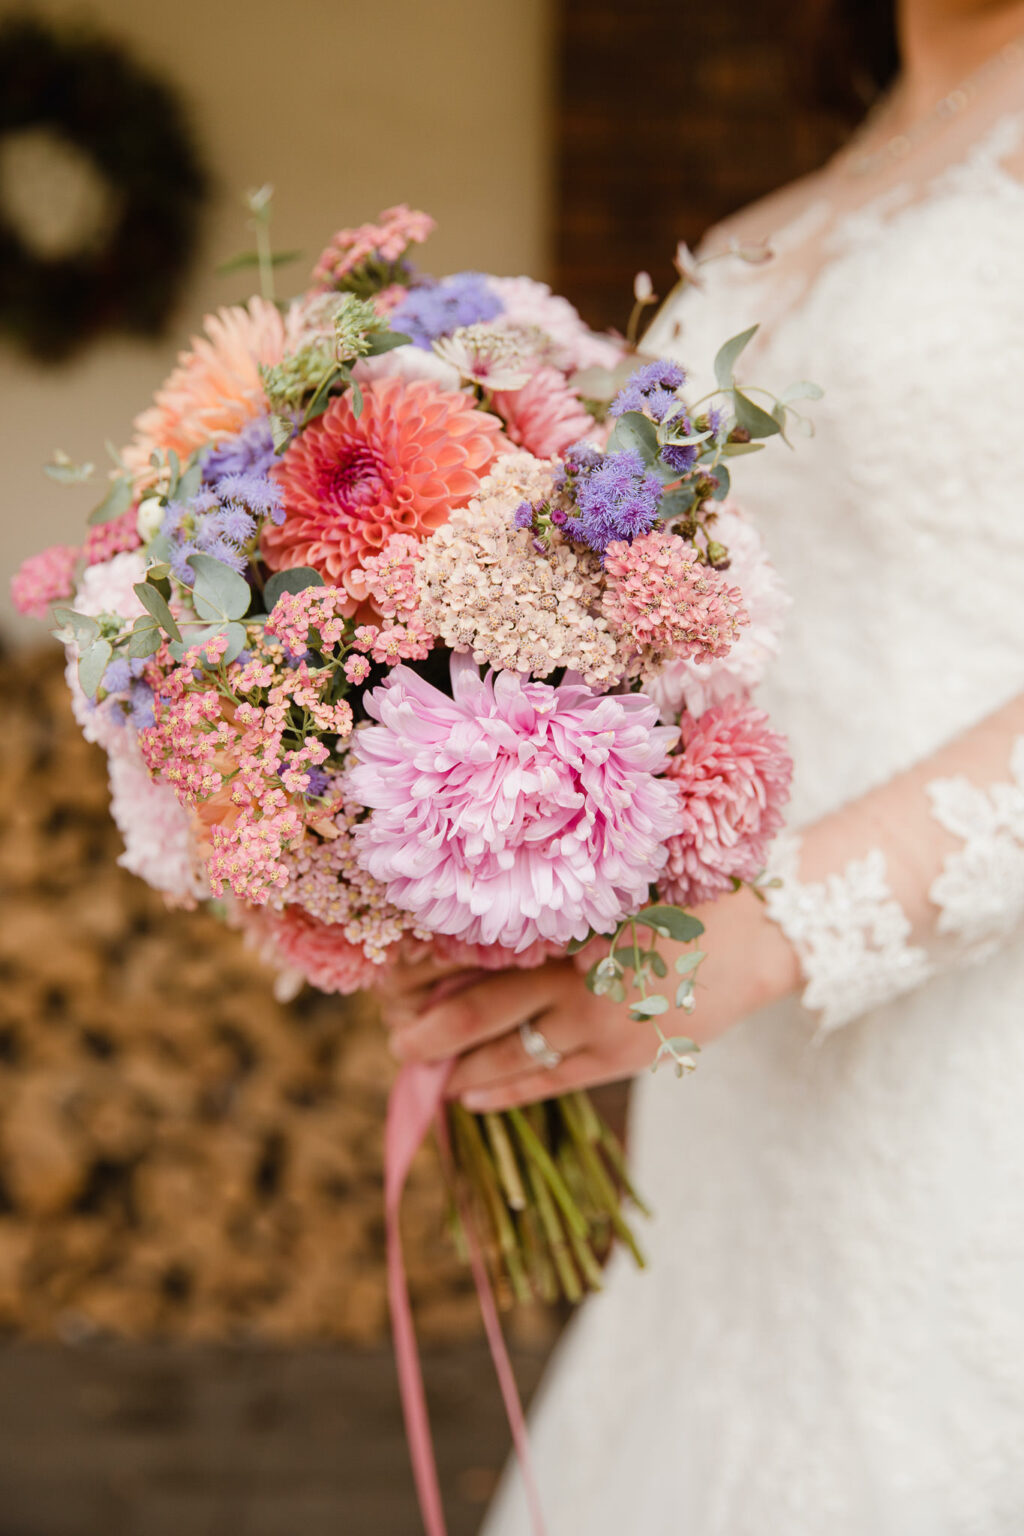 A pastel textured wedding bouquet with dahlias and pale pink chyrsanths by Nature's Posy. Photo credit: Michelle Hugglestone